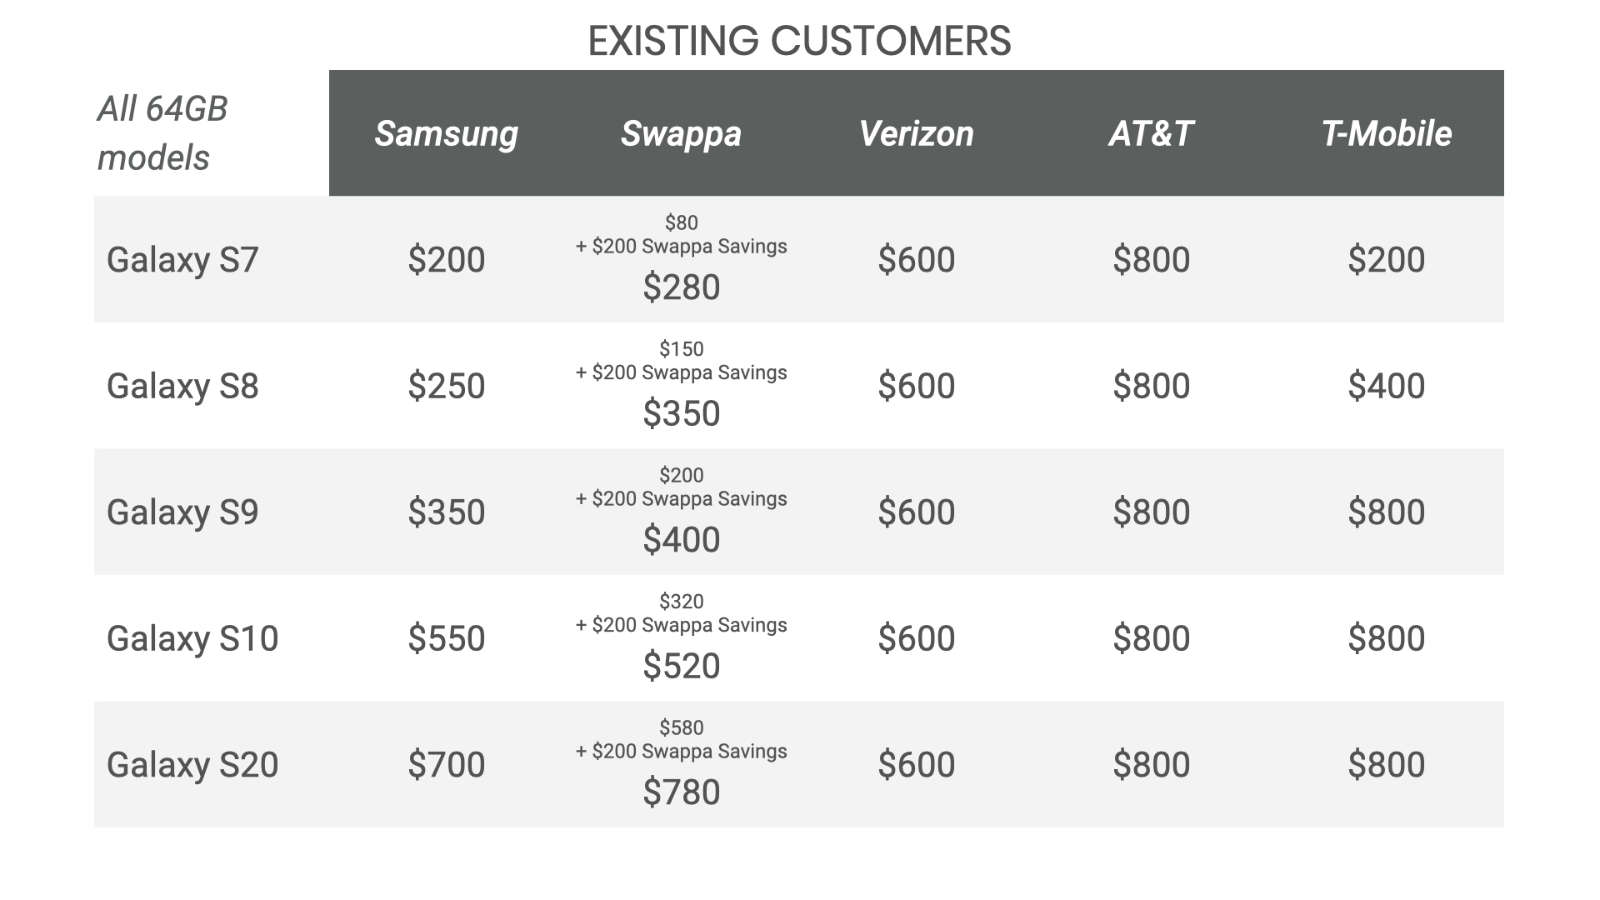 Existing customers on Verizon, AT&T, and T-Mobile are also eligible for incredible trade-in deals on the S21